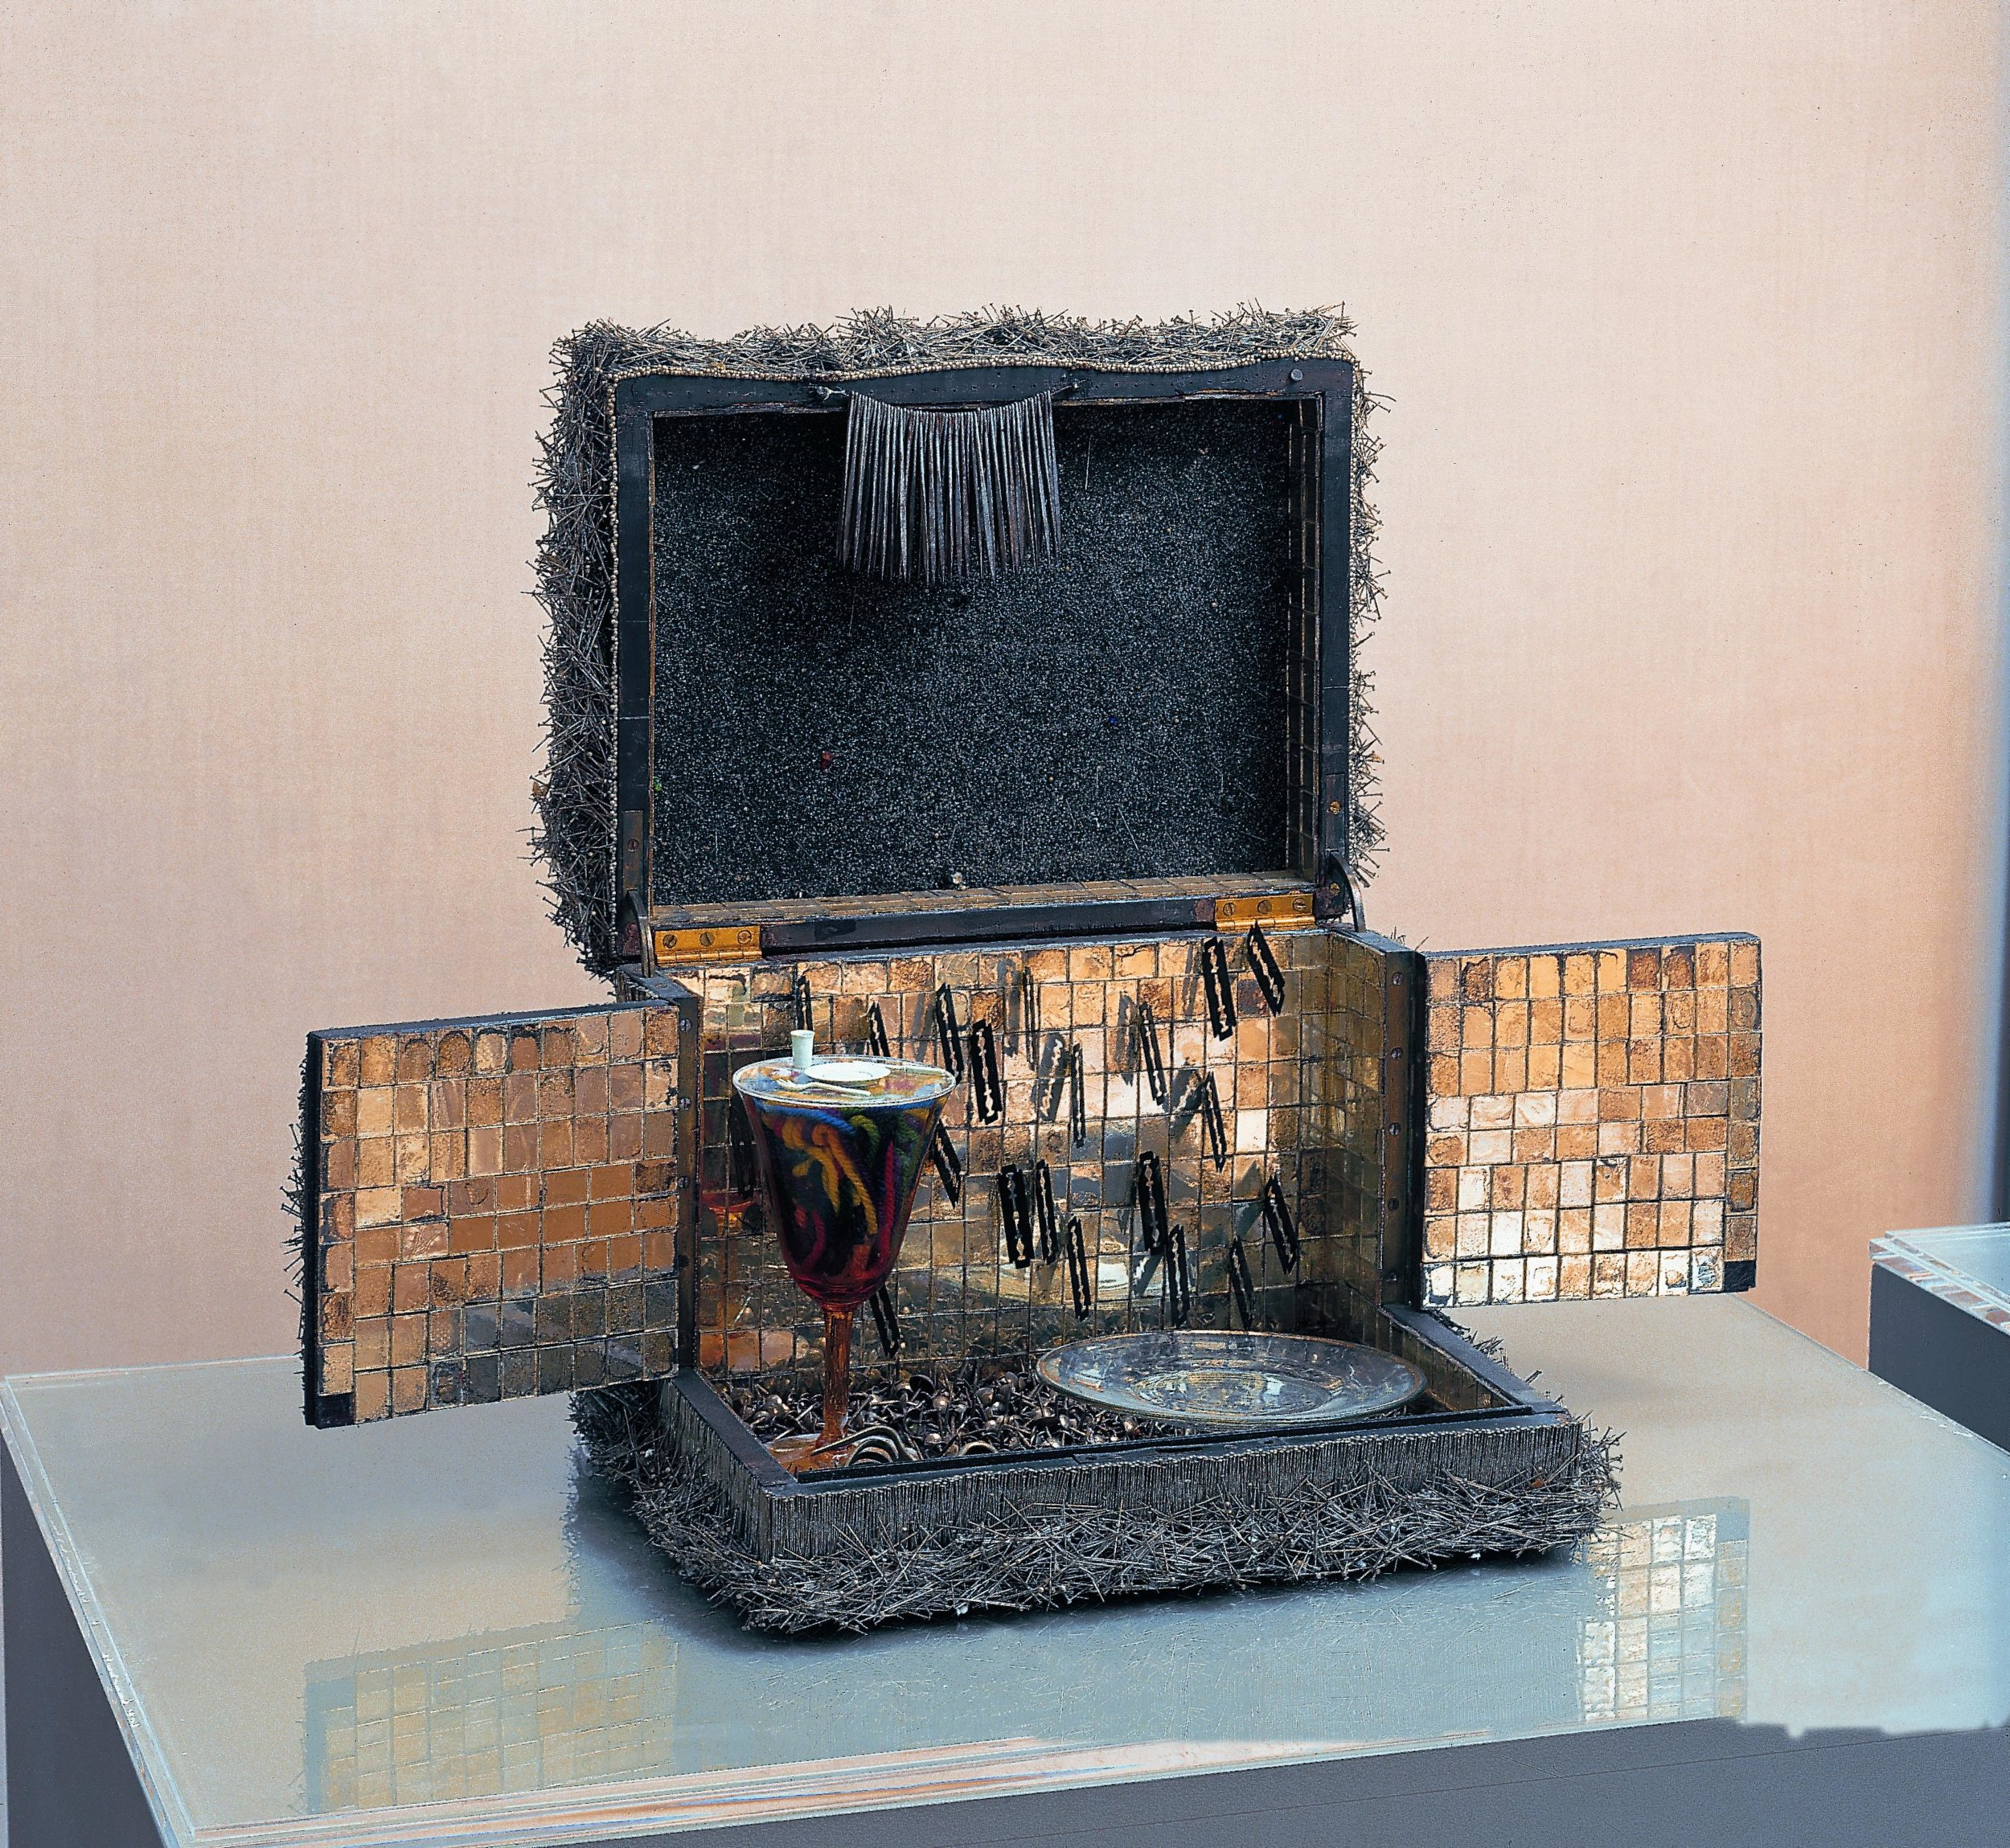 Lucas Samaras  Box #4, 1963 Mixed Media (wooden construction, steel, needles, razor blades, forks, plastic, sand, mirrors, wool) , 17 1/3 x 11 3/4 inches SOLD